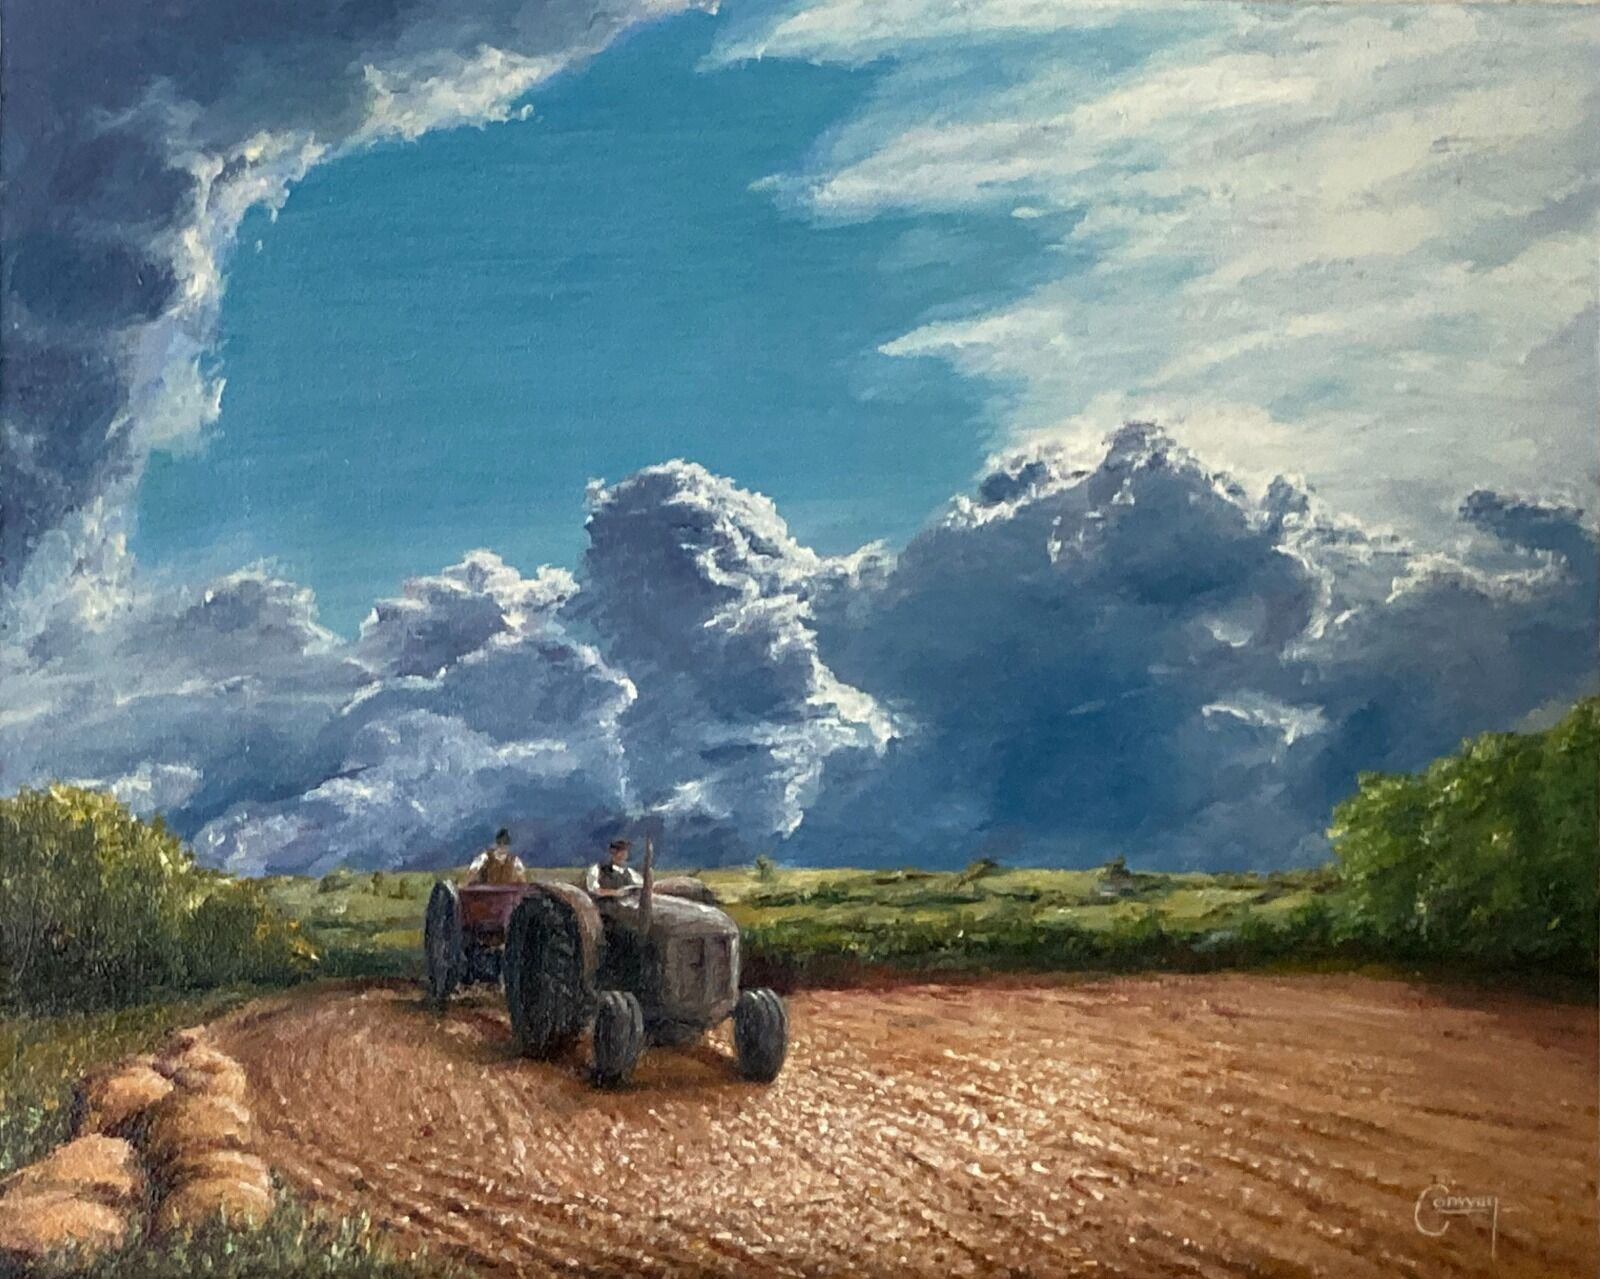 Painting of vintage tractor drilling a field.